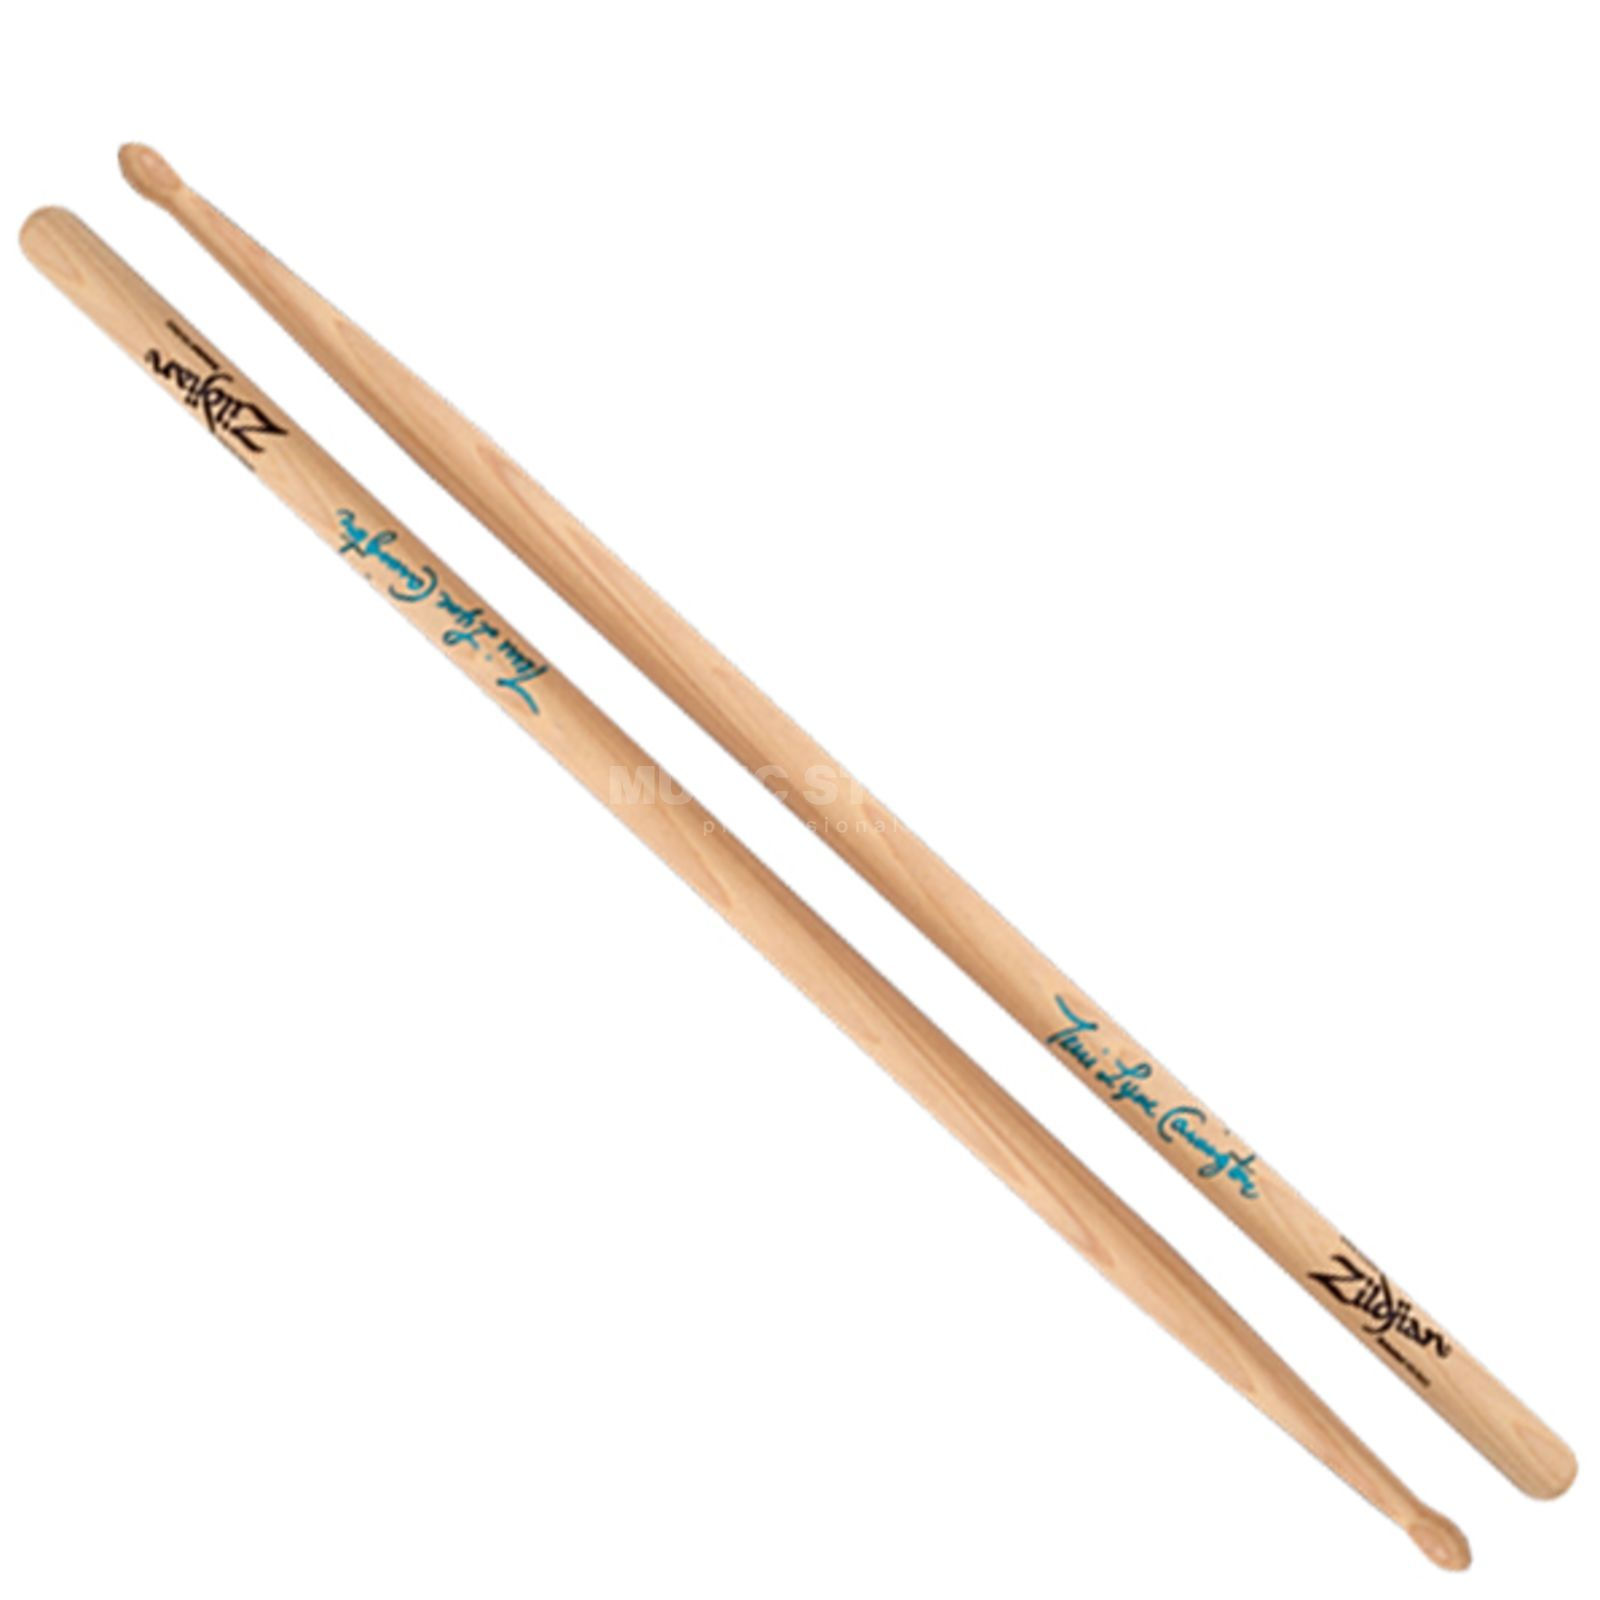 Zildjian Terri Lyne Carrington Sticks, Wood Produktbillede